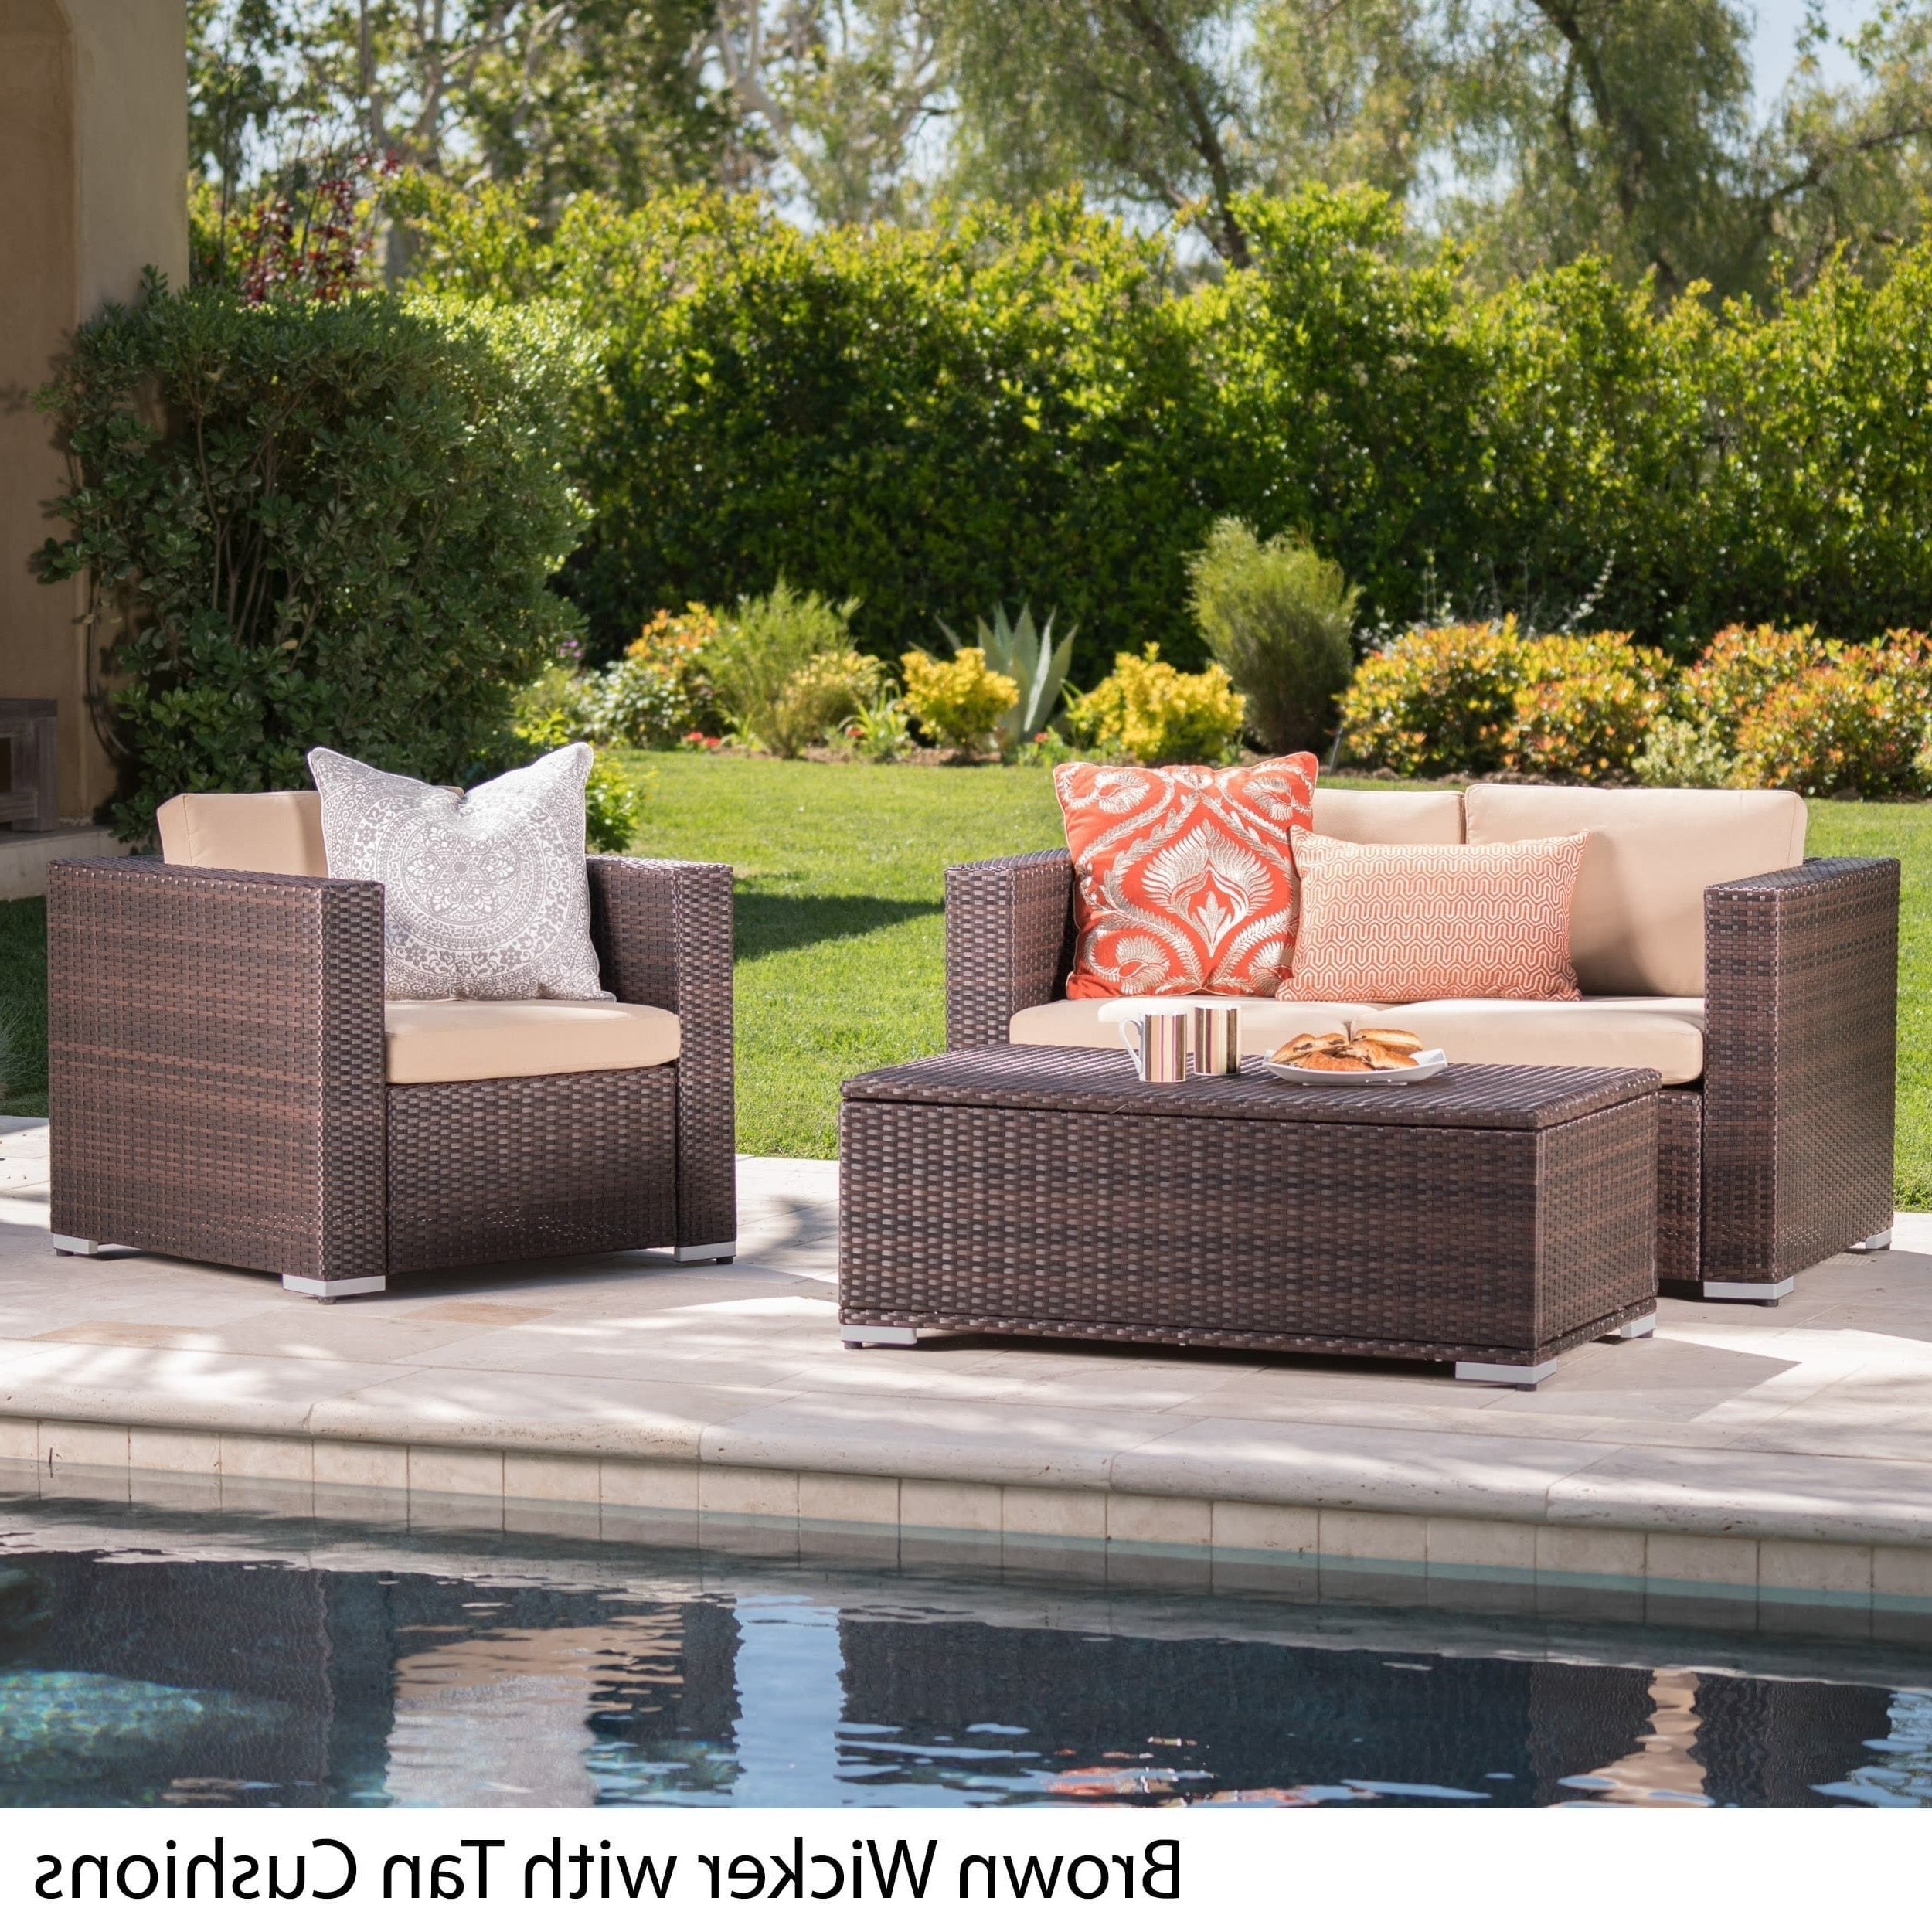 Well Liked Murano Outdoor 3 Piece Wicker Chat Set With Cushions And Storage With Patio Conversation Set With Storage (View 17 of 20)